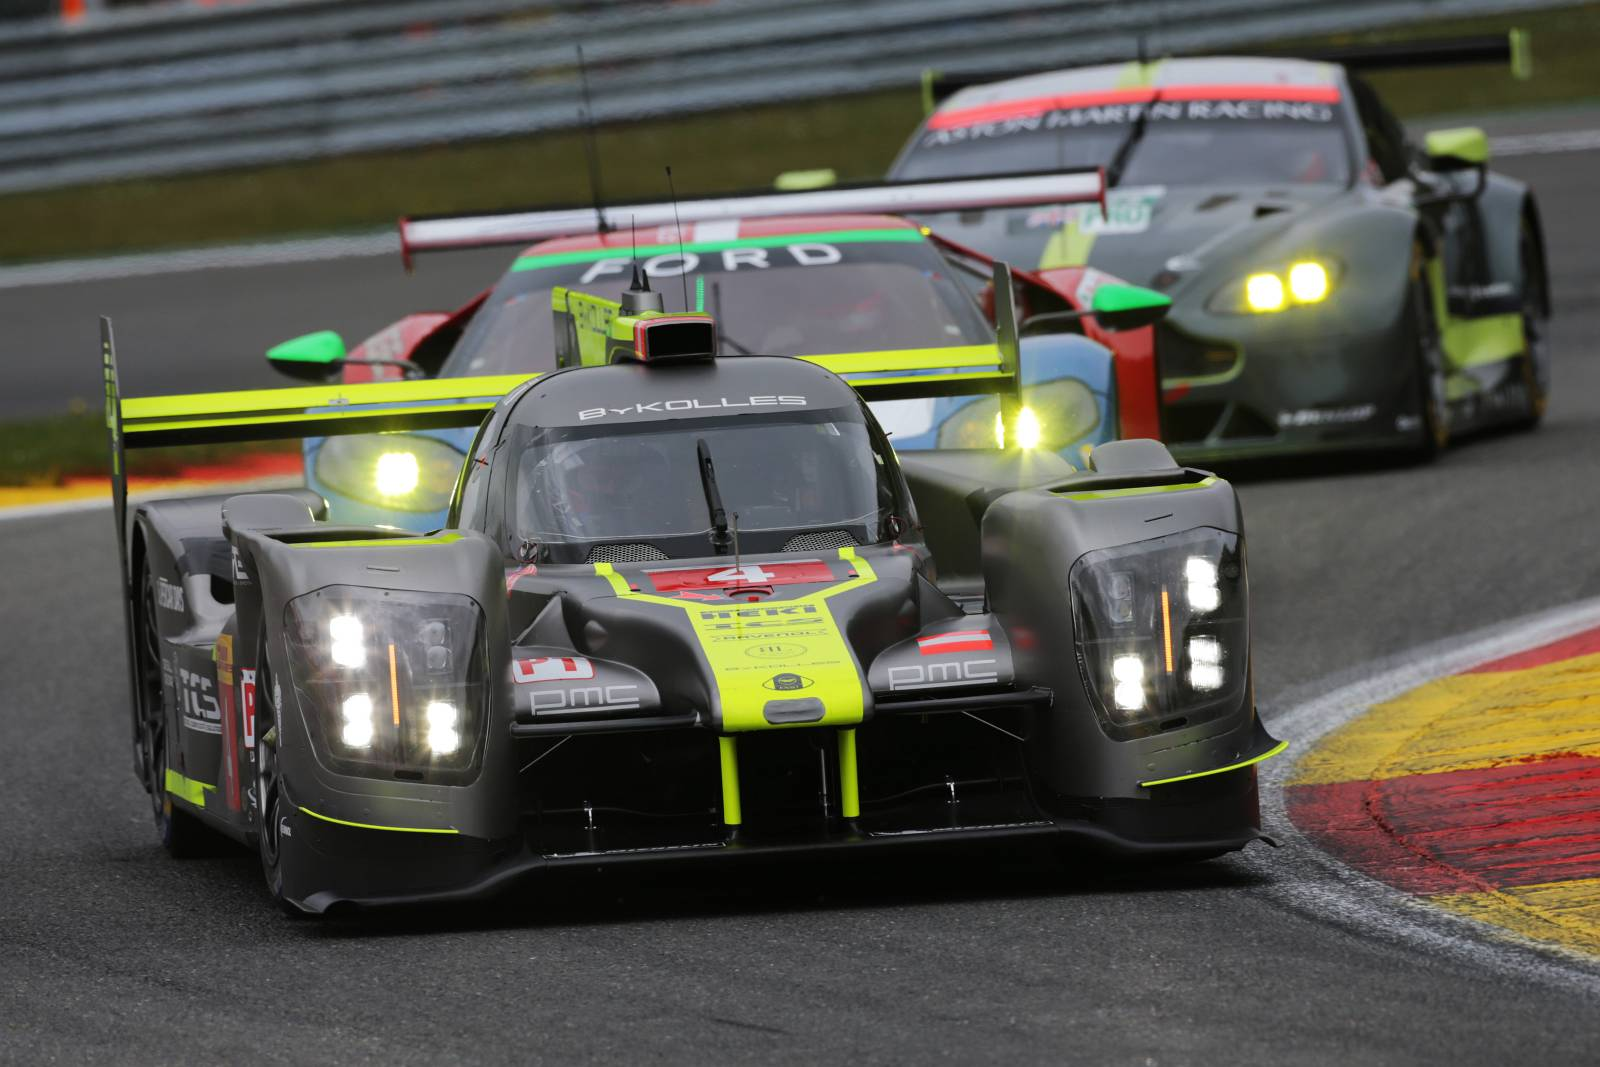 byKOLLES-racing-WEC-SPA-2017-38